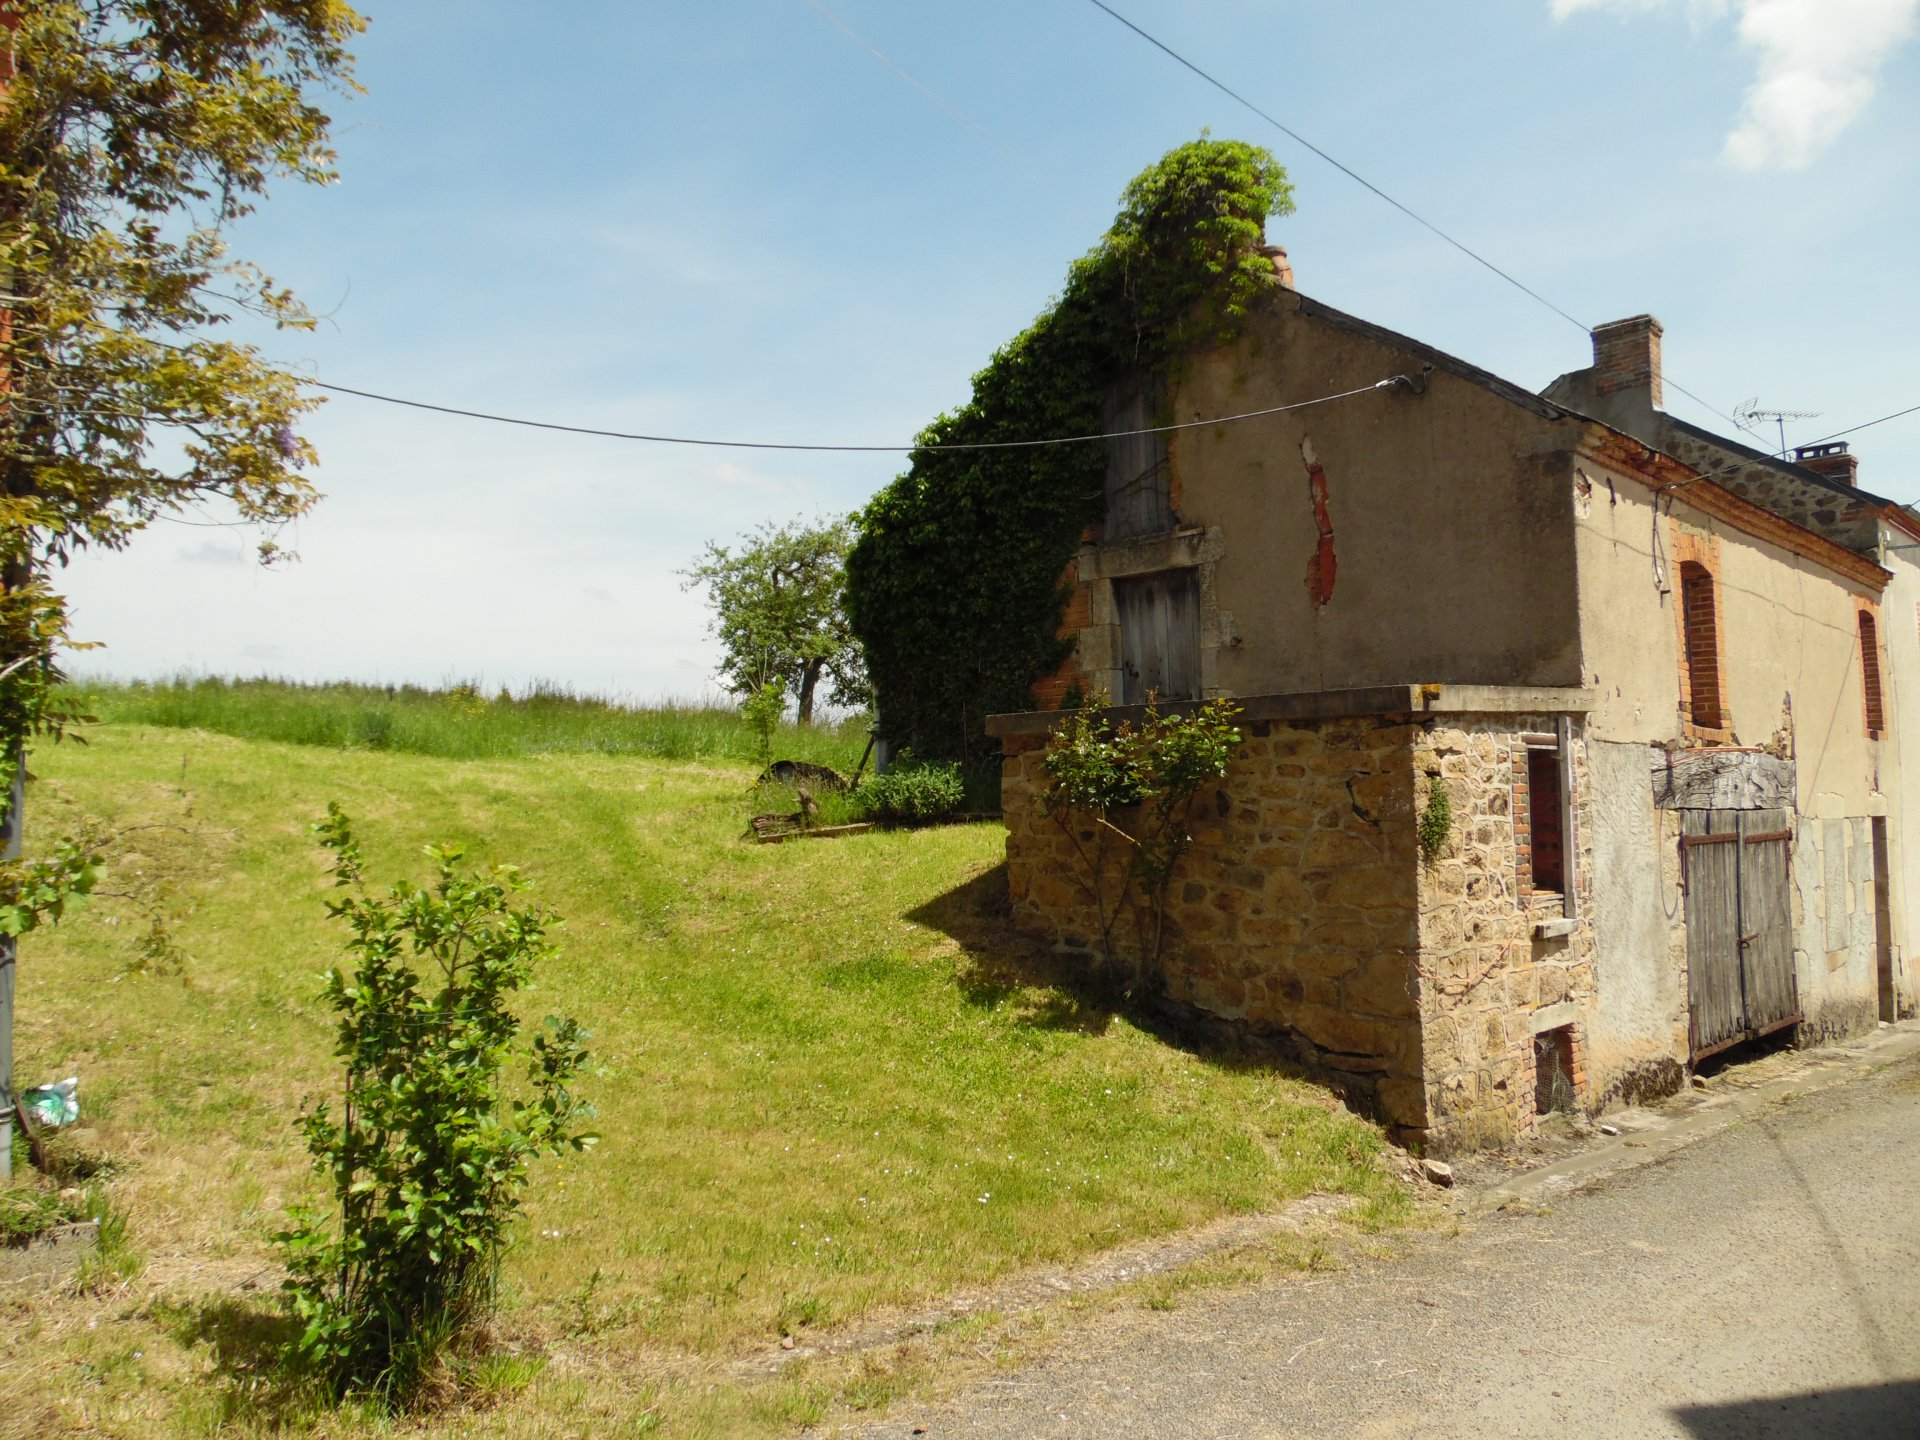 For sale in the Creuse, region Limousin, house with outbuilding.